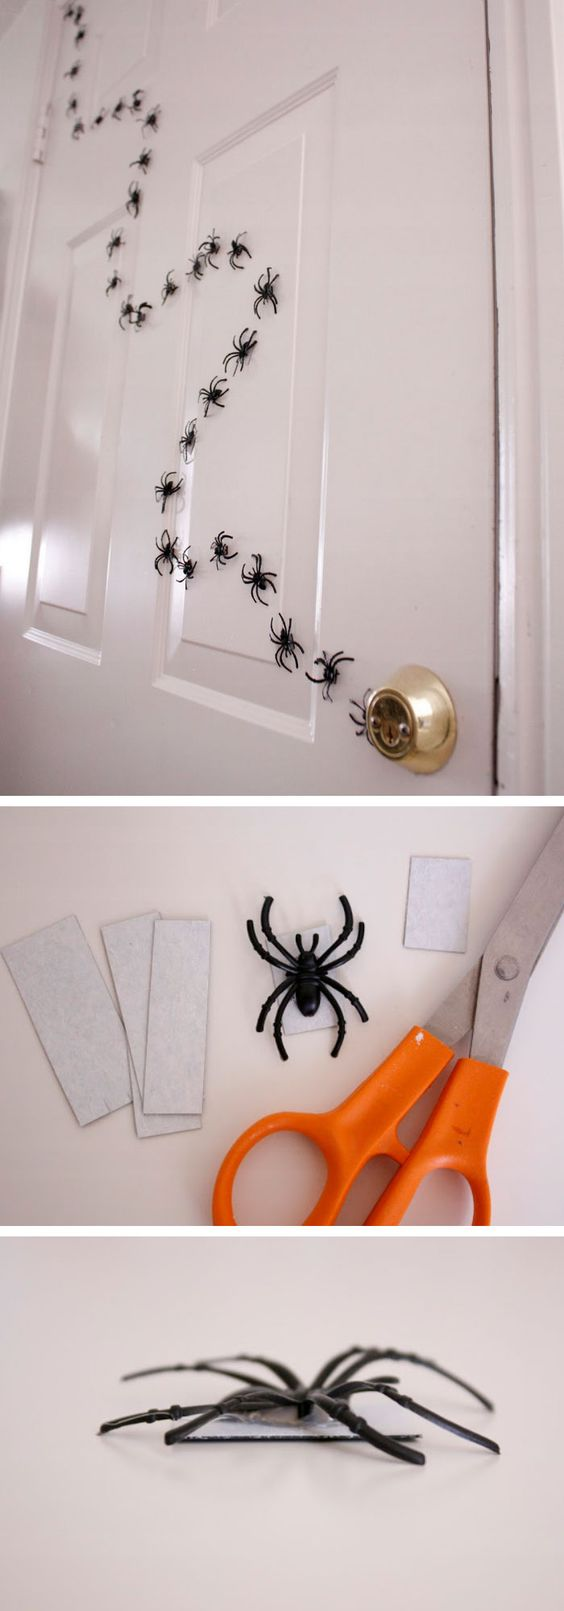 The best do it yourself halloween decorations spooktacular easy and cheap magnetic halloween spiders decorations delia creates spooktacular halloween diys crafts solutioingenieria Images